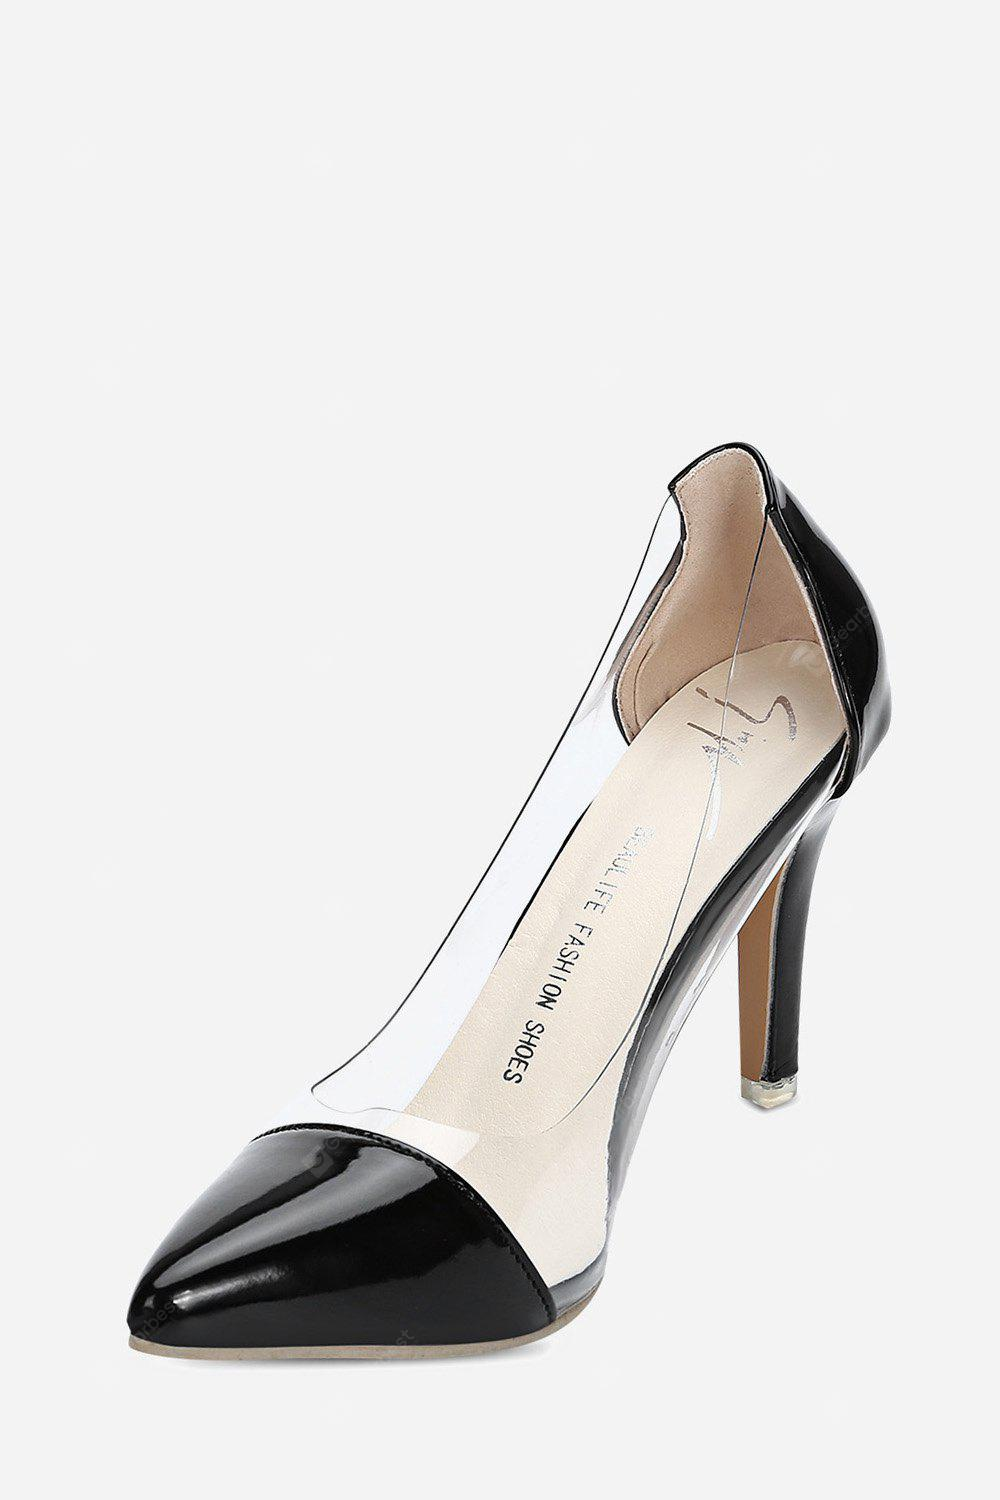 Pointed Toe See-through Thin High Heel Women Shoes